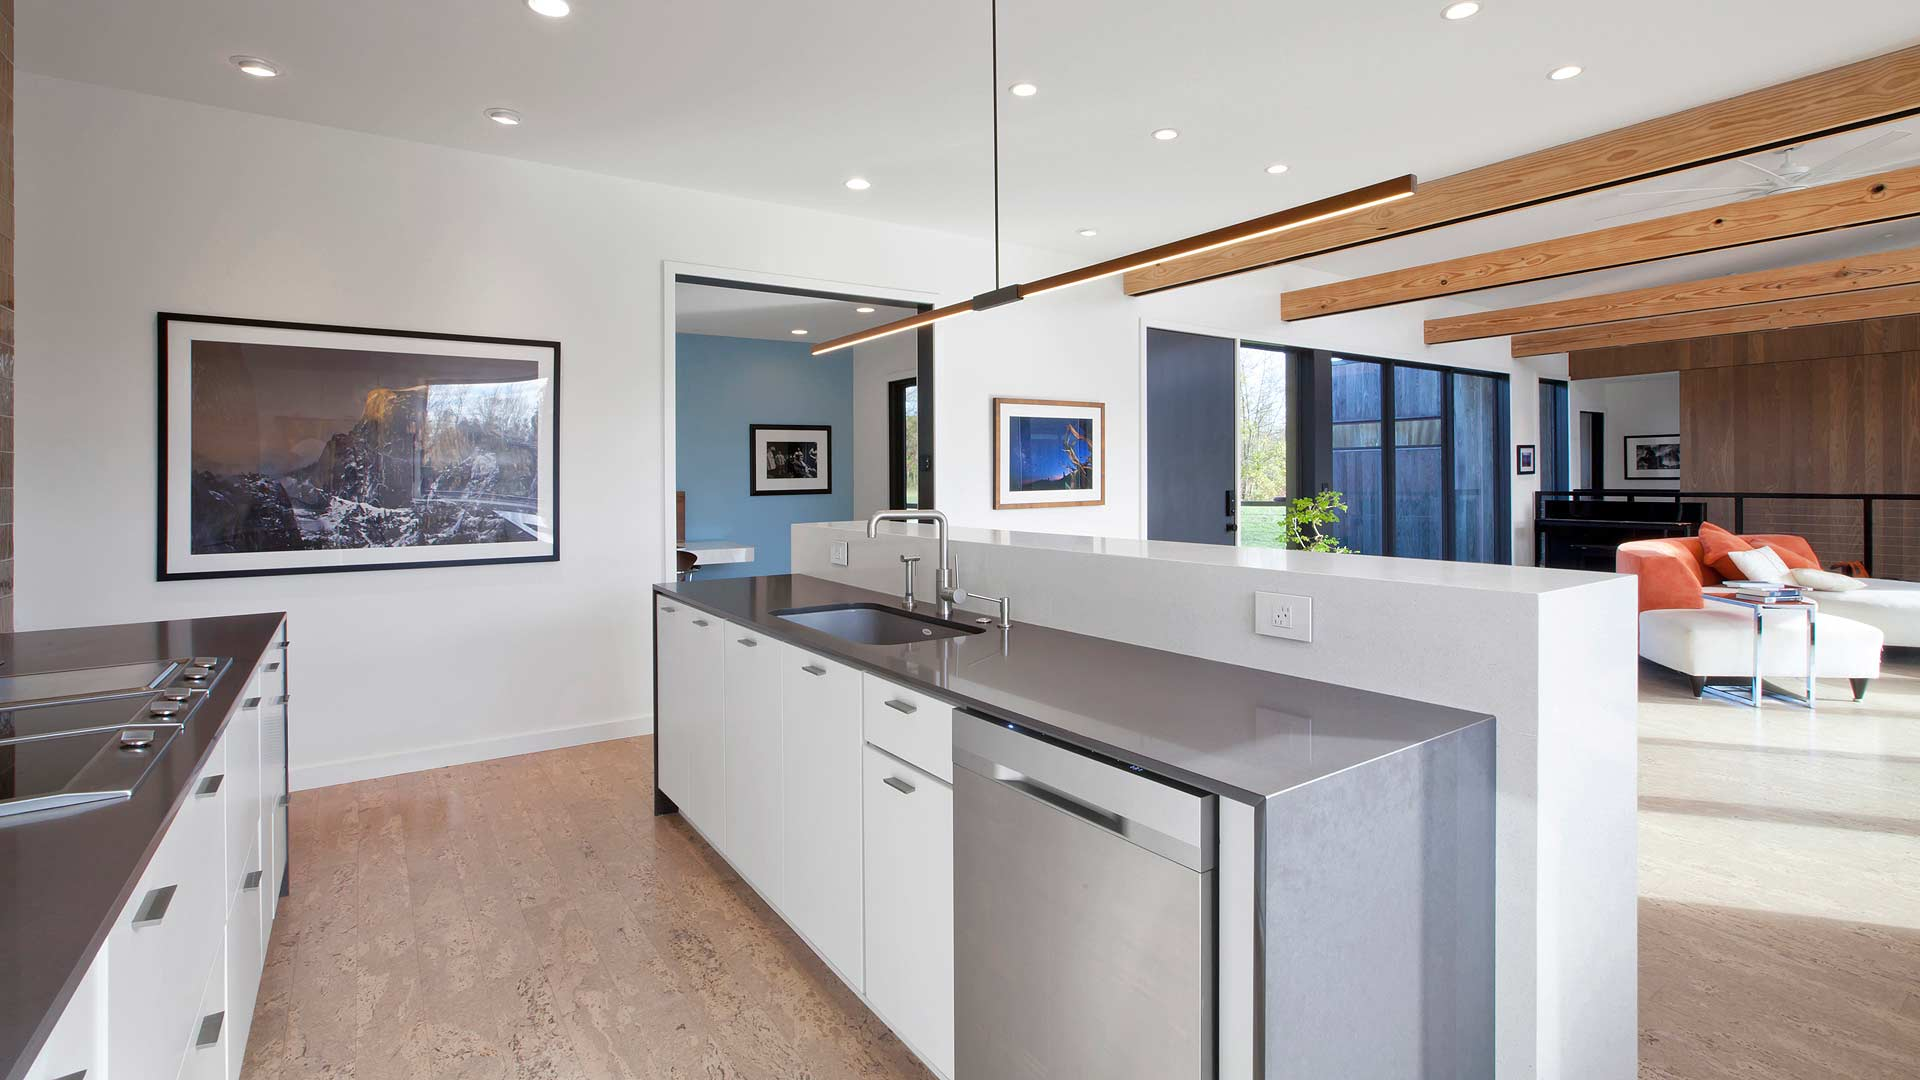 View of modern kitchen with stainless steel appliances, white slab door cabinets, and stick light - cork floor, exposed beams, vaulted ceilings, custom artwork - New Modern House 1 (Copperwood) - Zionsville, IN